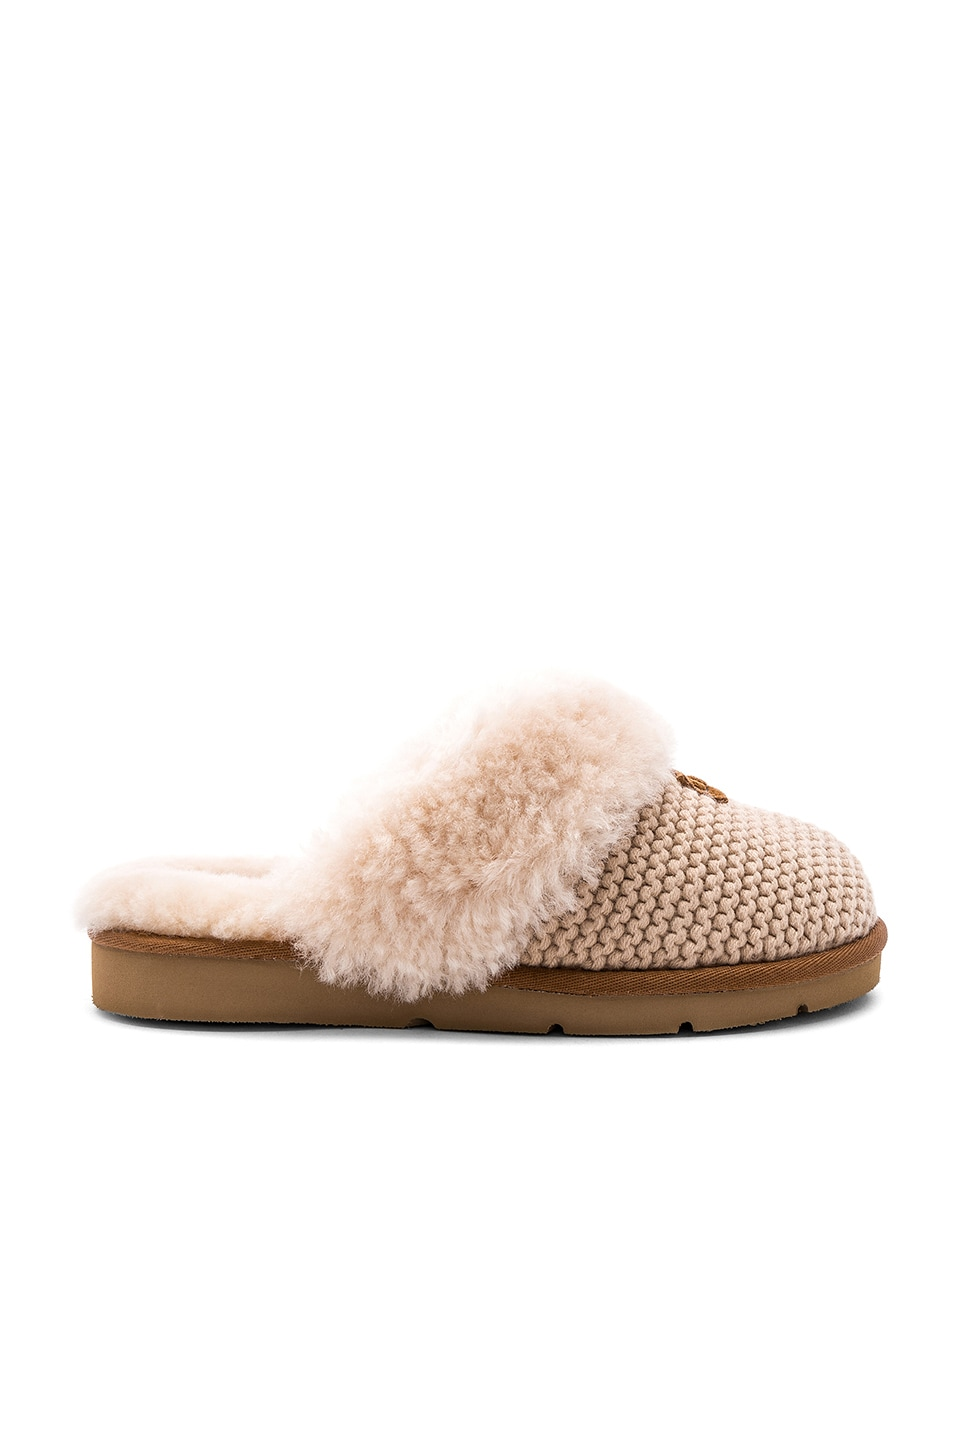 UGG Cozy Knit Slipper in Cream